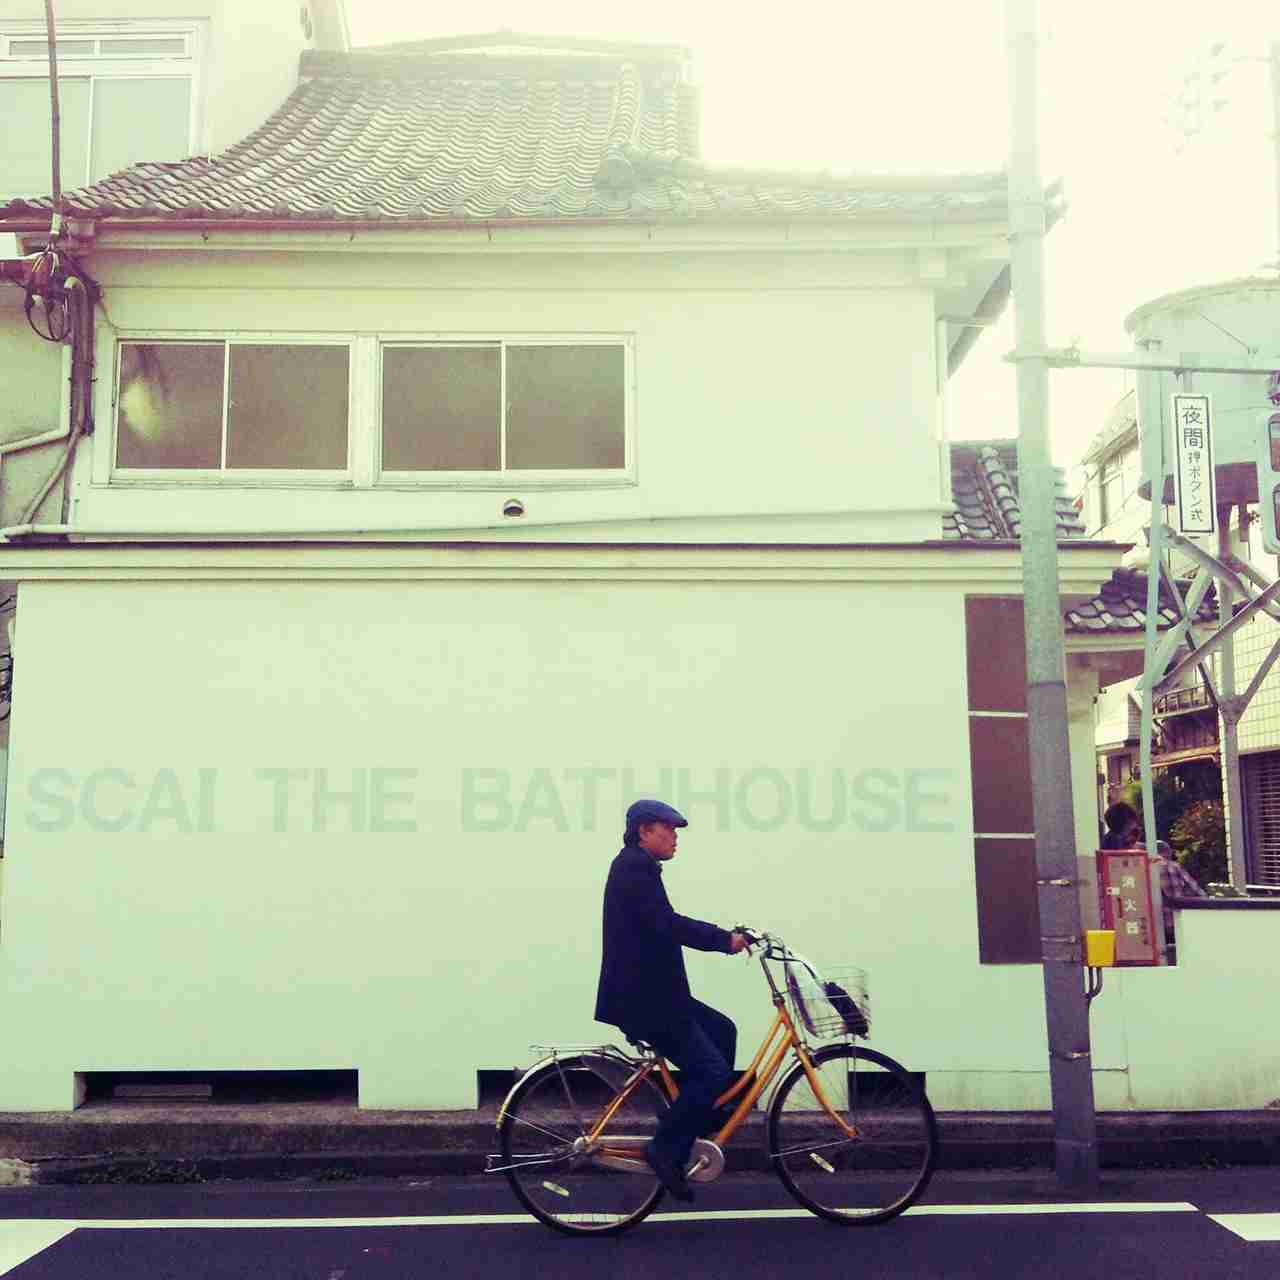 SCAI The Bathhouse.(Photo by Isabelle Raphael)